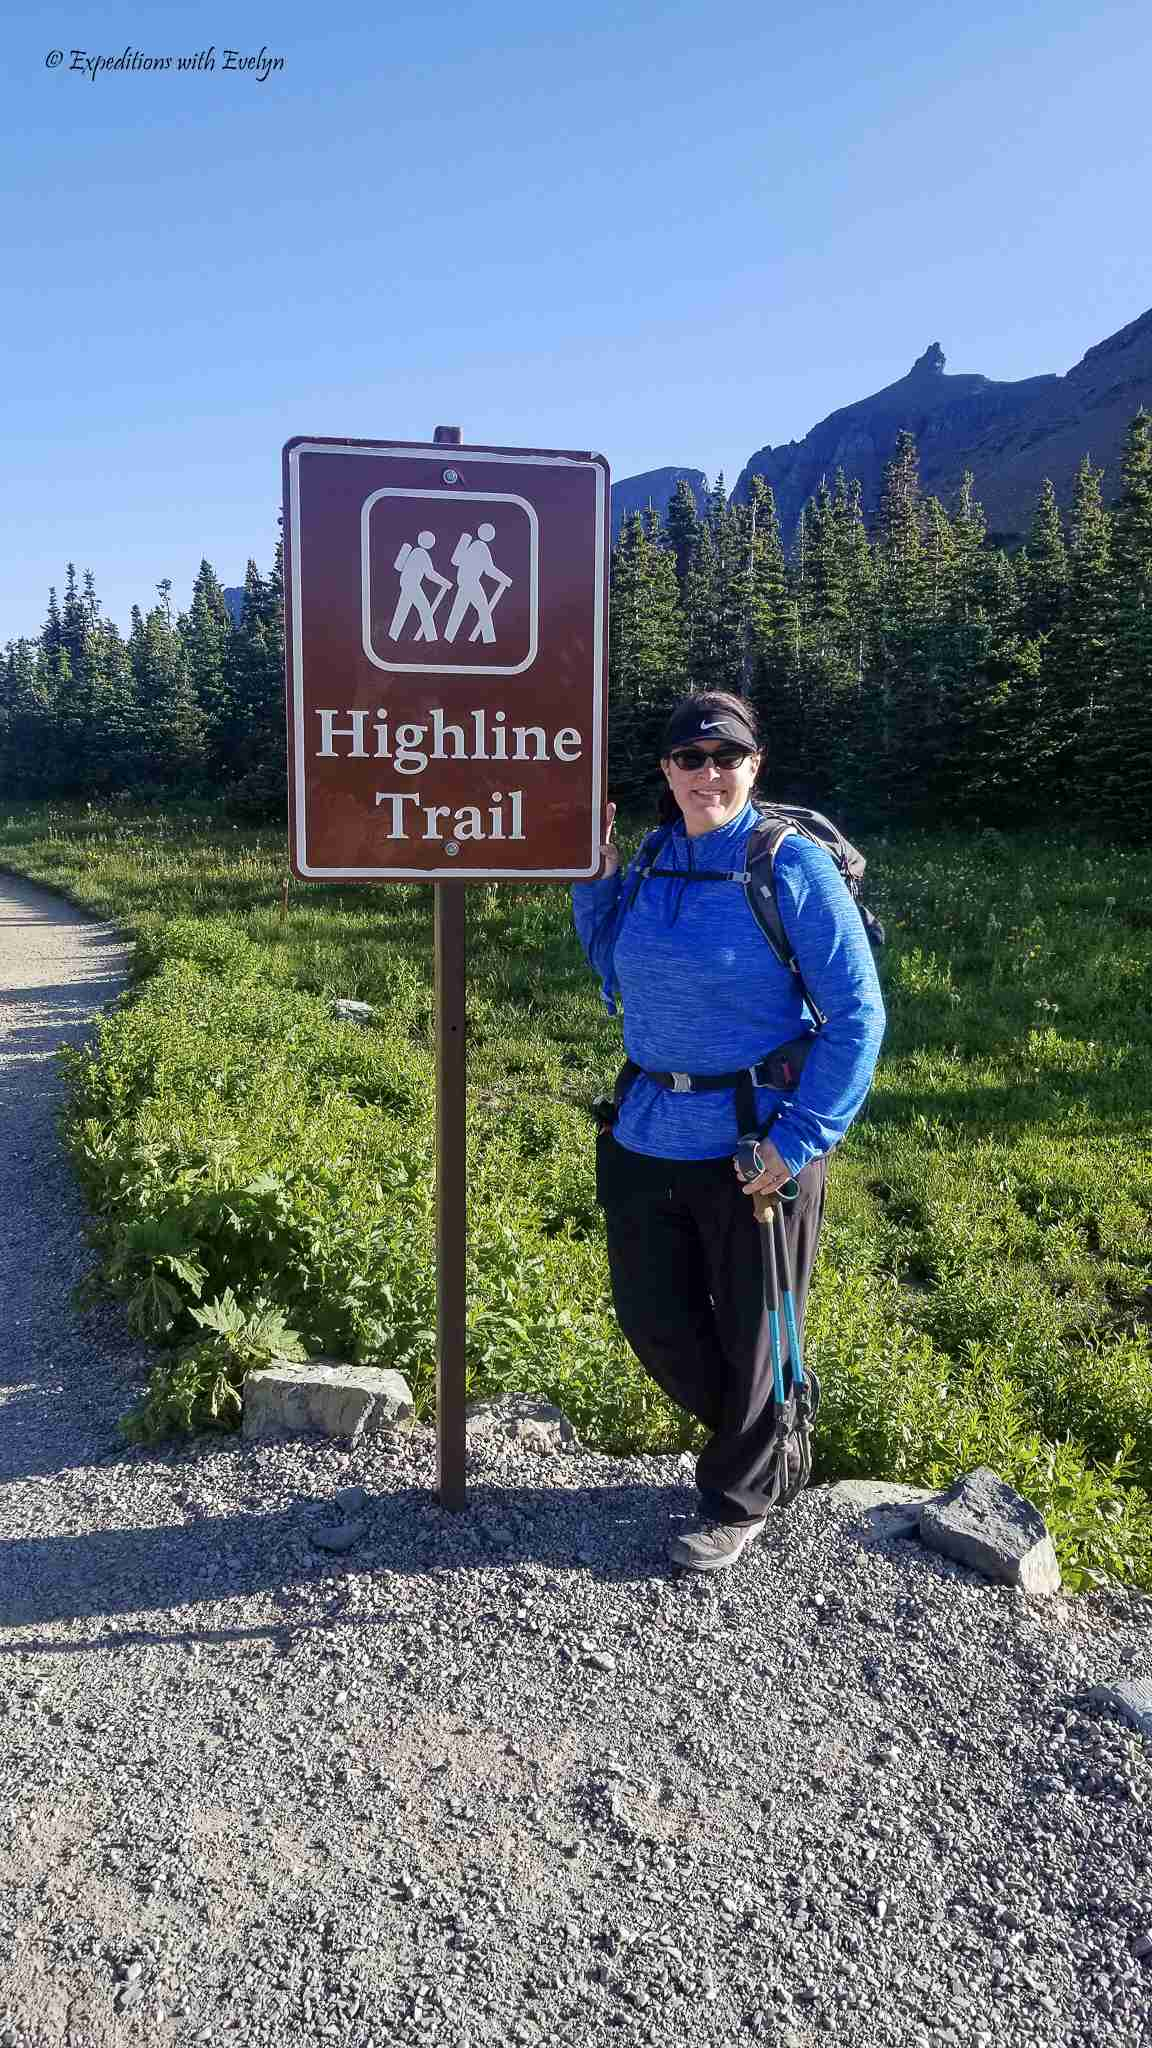 """A female hiker in a blue shirt, black pants, and backpack, poses at a trailhead side with white letters reading """"Highline Trail""""."""